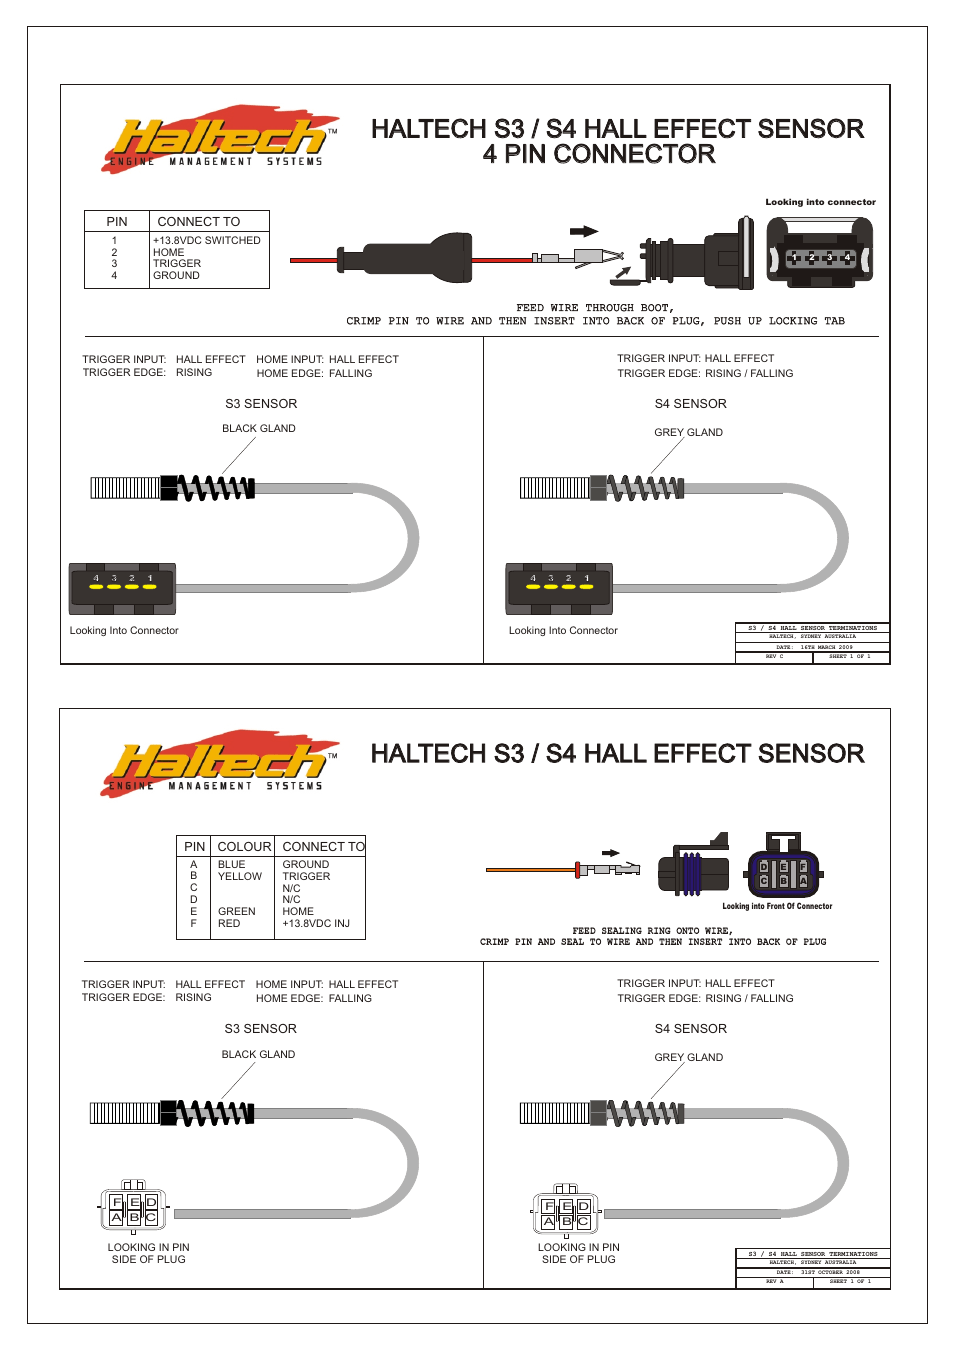 medium resolution of  manual page 98 99 haltech s3 s4 hall effect sensor 4 pin connector haltech s3 s4 rh manualsdir com hall